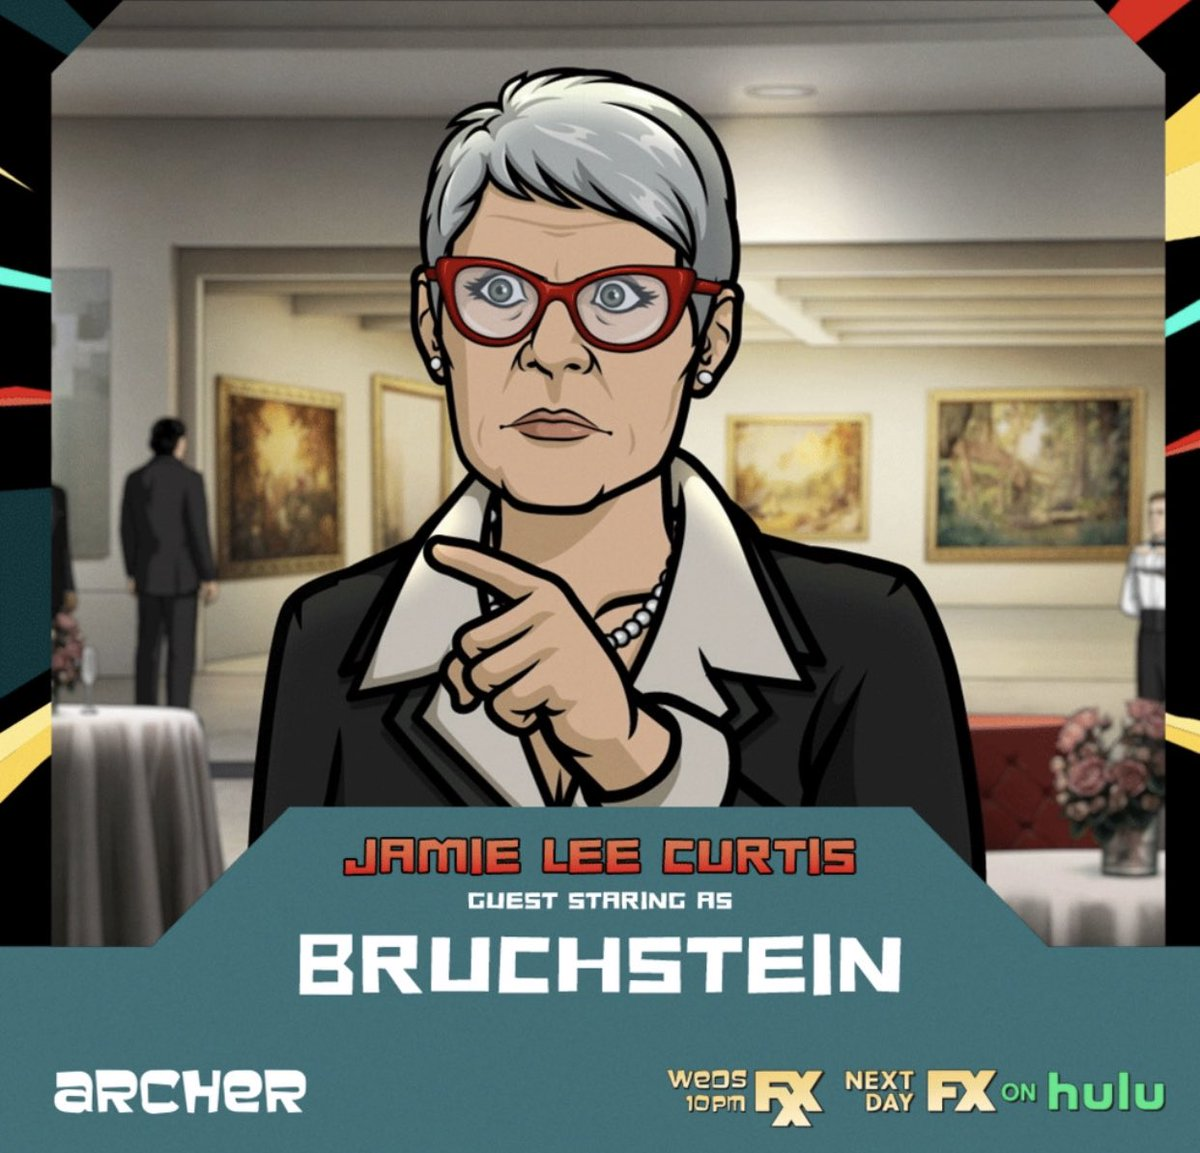 Bucket list ✅ alert! Getting 2 b a character @archerfxx The 11th season of sensational, snappy laugh-out-loud shenanigans starts TONIGHT with TWO back2back episodes. I'm sure @missjudygreer held her @halloweenmovie rifle 2 their heads but however it happened... IT HAPPENED! https://t.co/c6gTulpZ2k